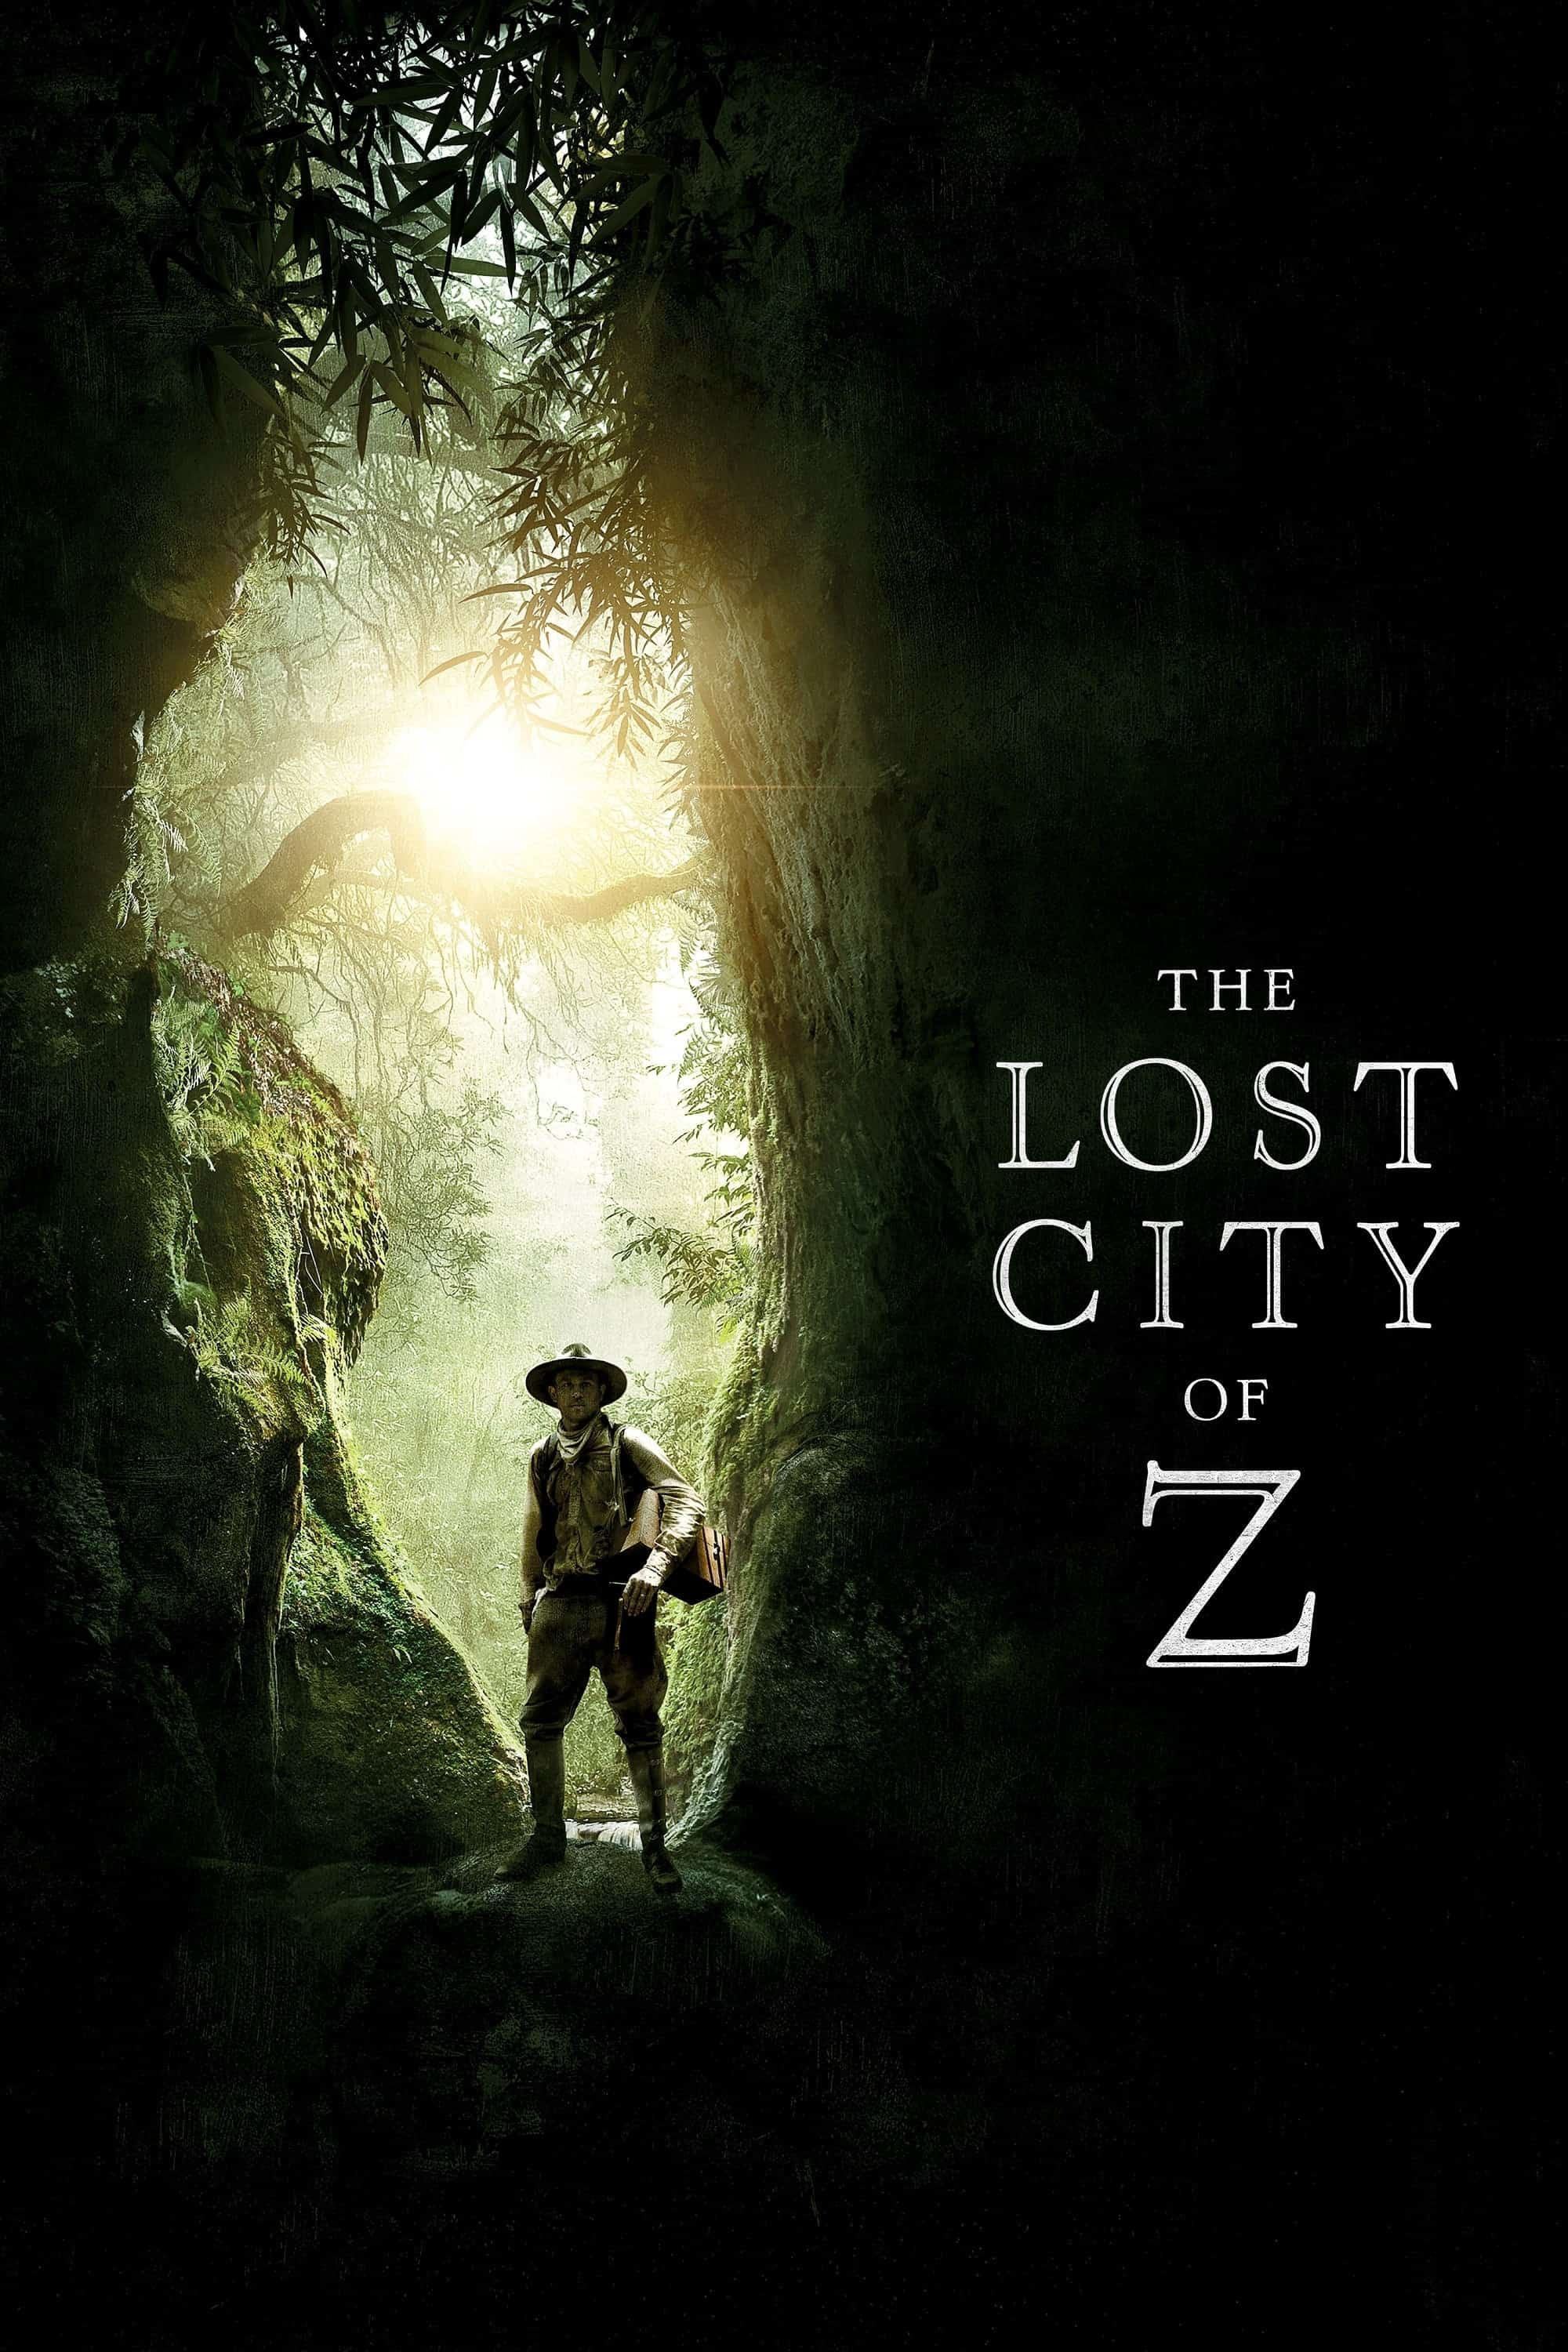 The Lost City of Z, 2016